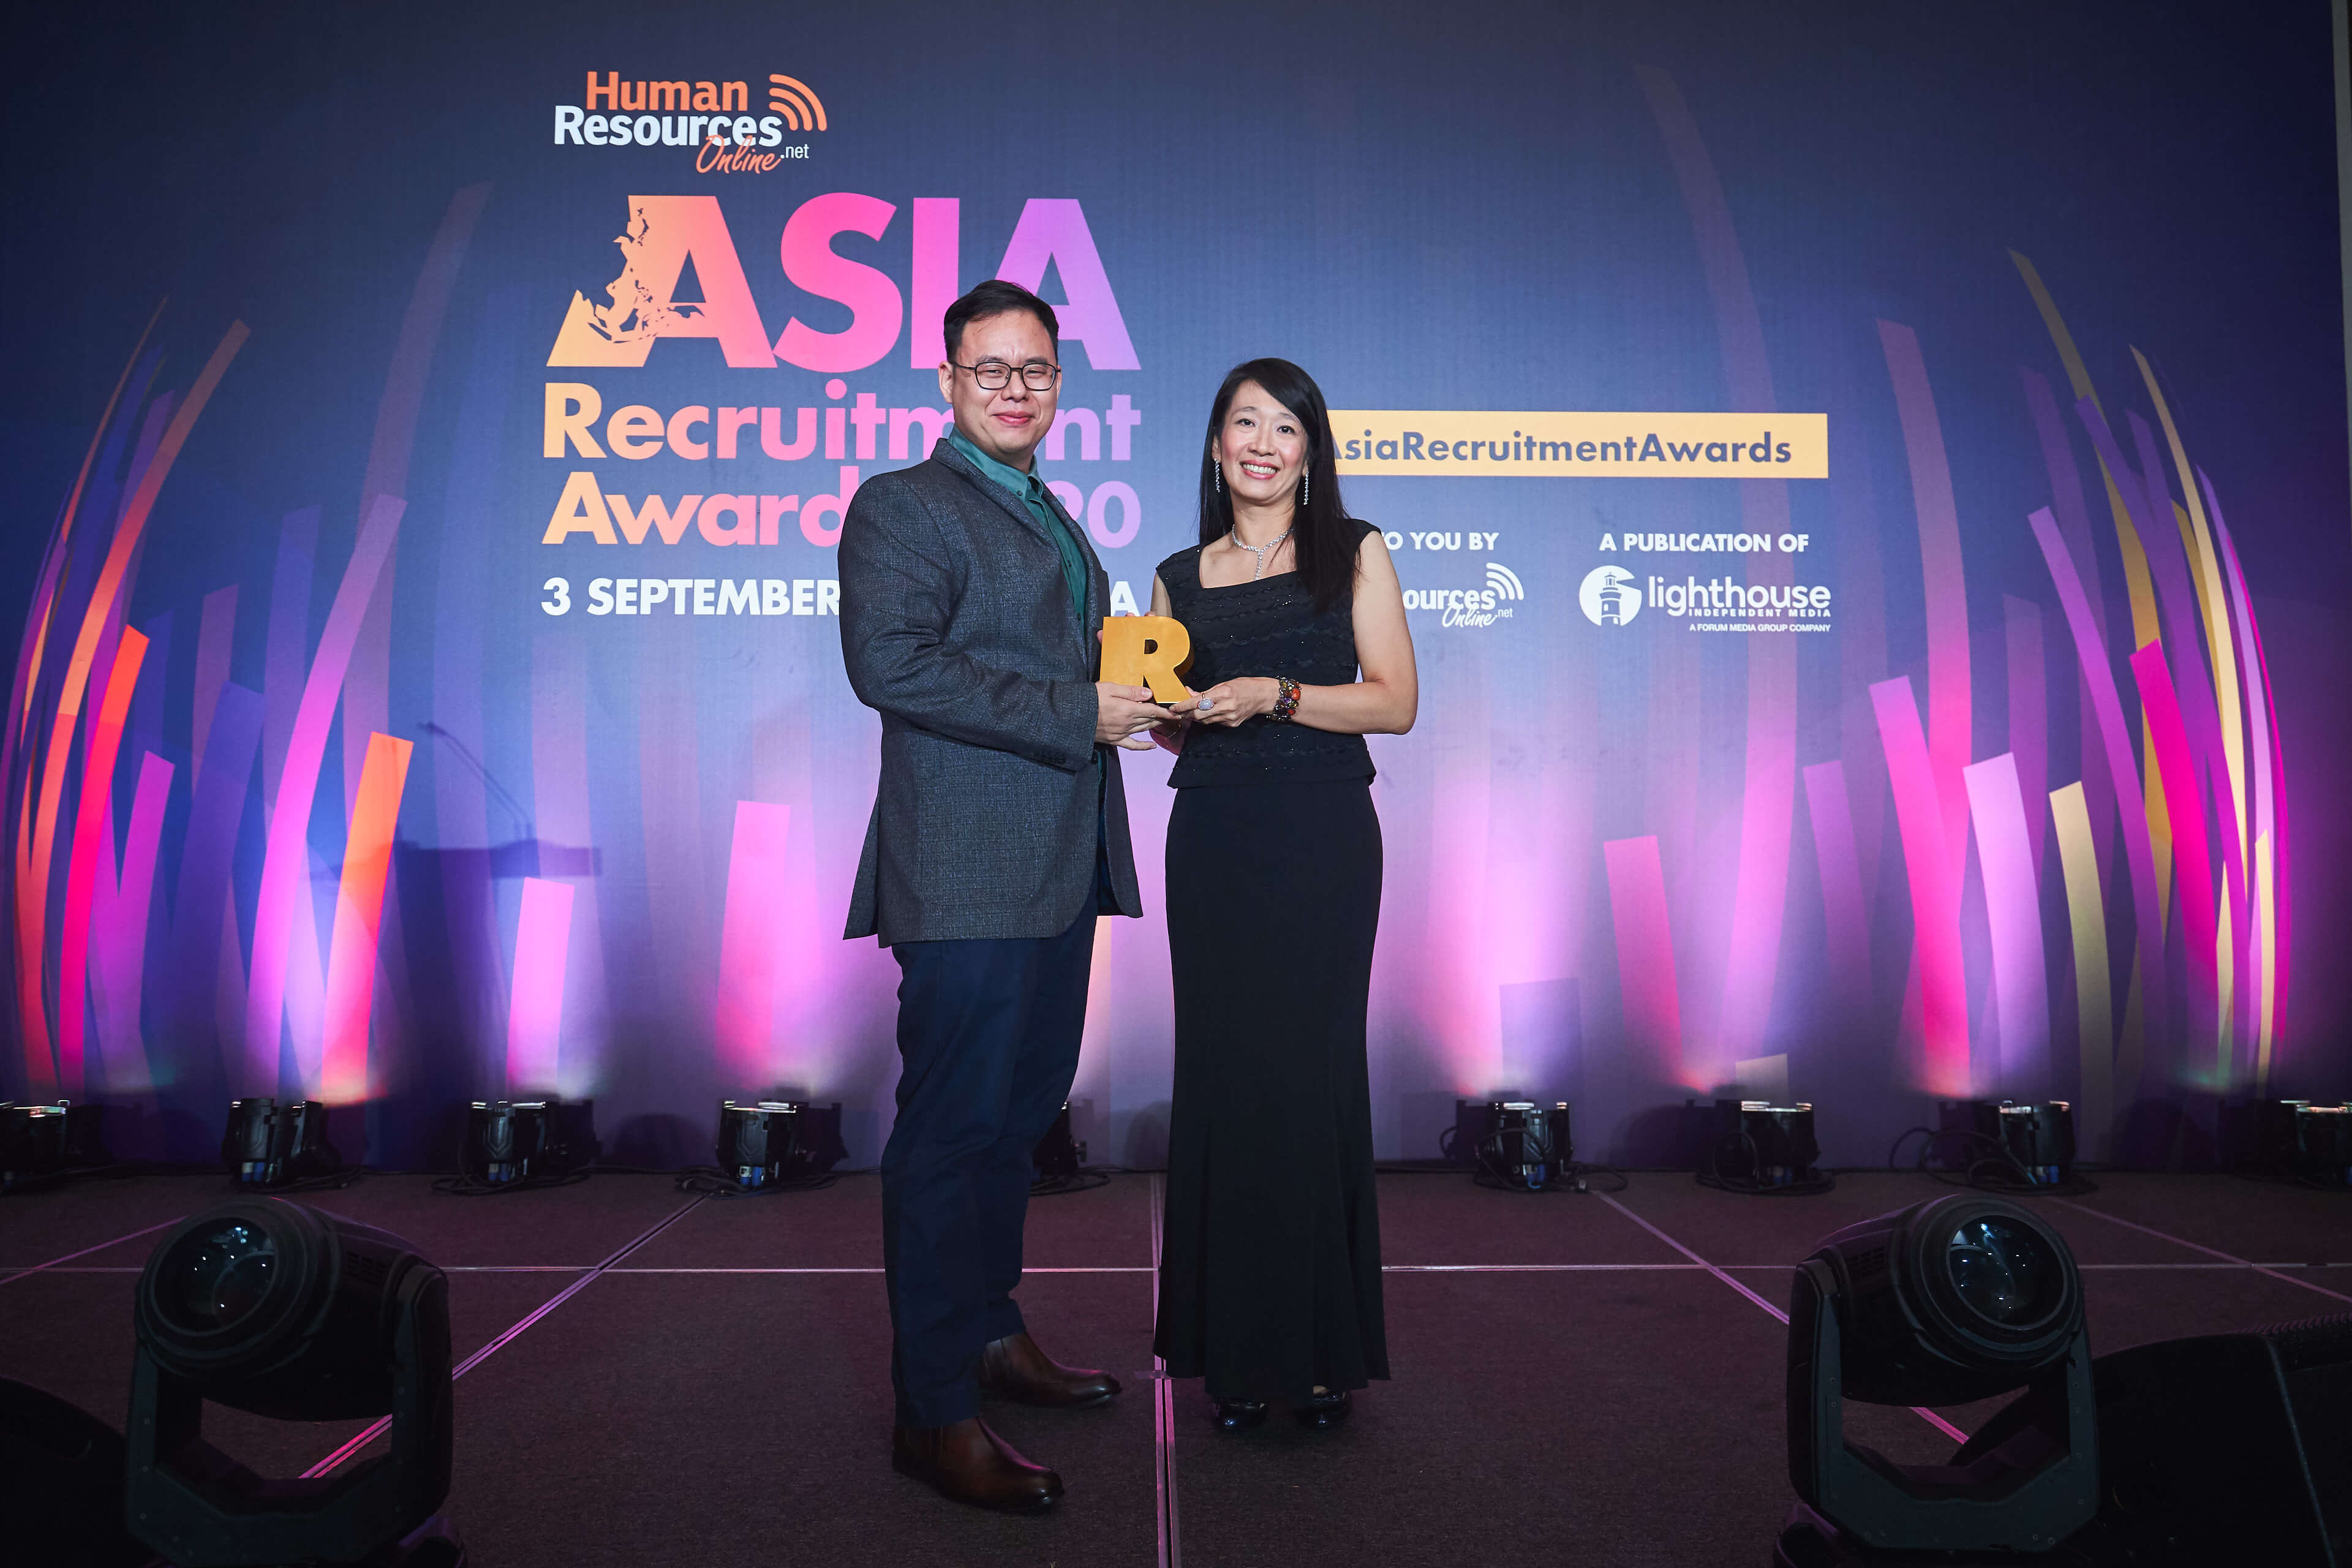 JP Associates IT Recruitment Firm Malaysia - Jeff getting recruiter of the year award in asia recruitment awards 2020